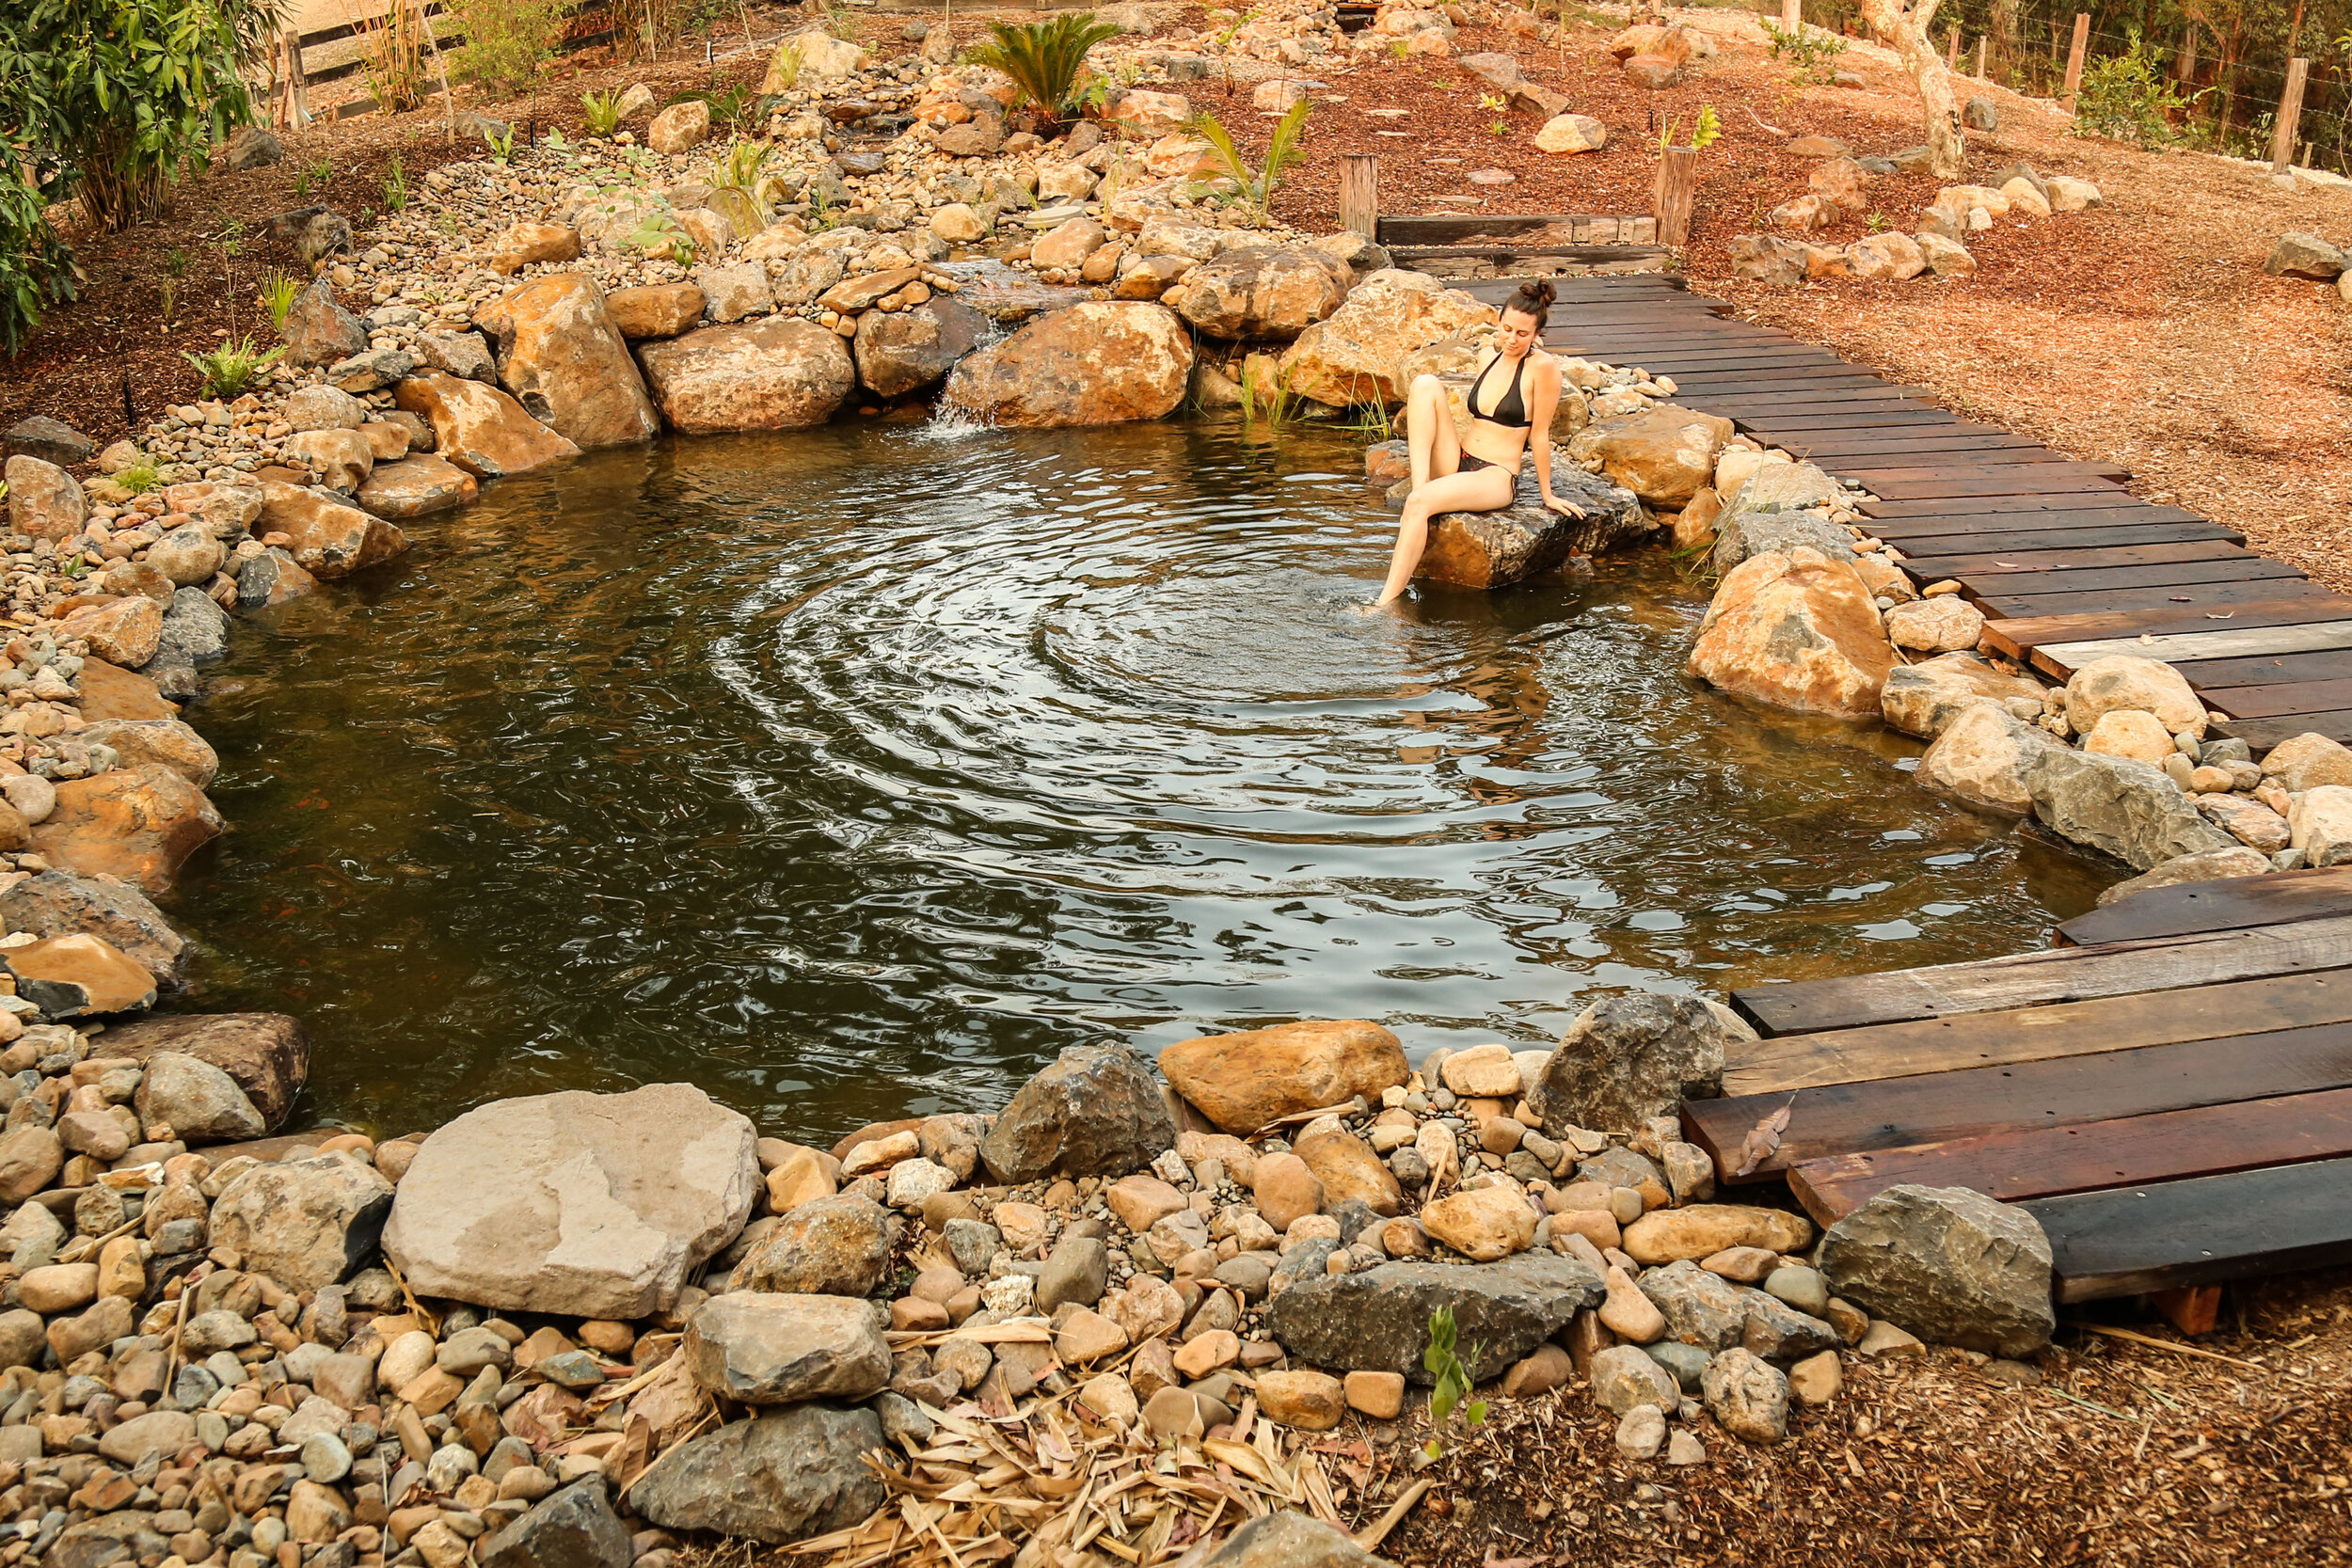 Natural Swimming Pool Flo Gardens Natural Pools Waterfalls Ecosystem Ponds Landscaping Byron Bay